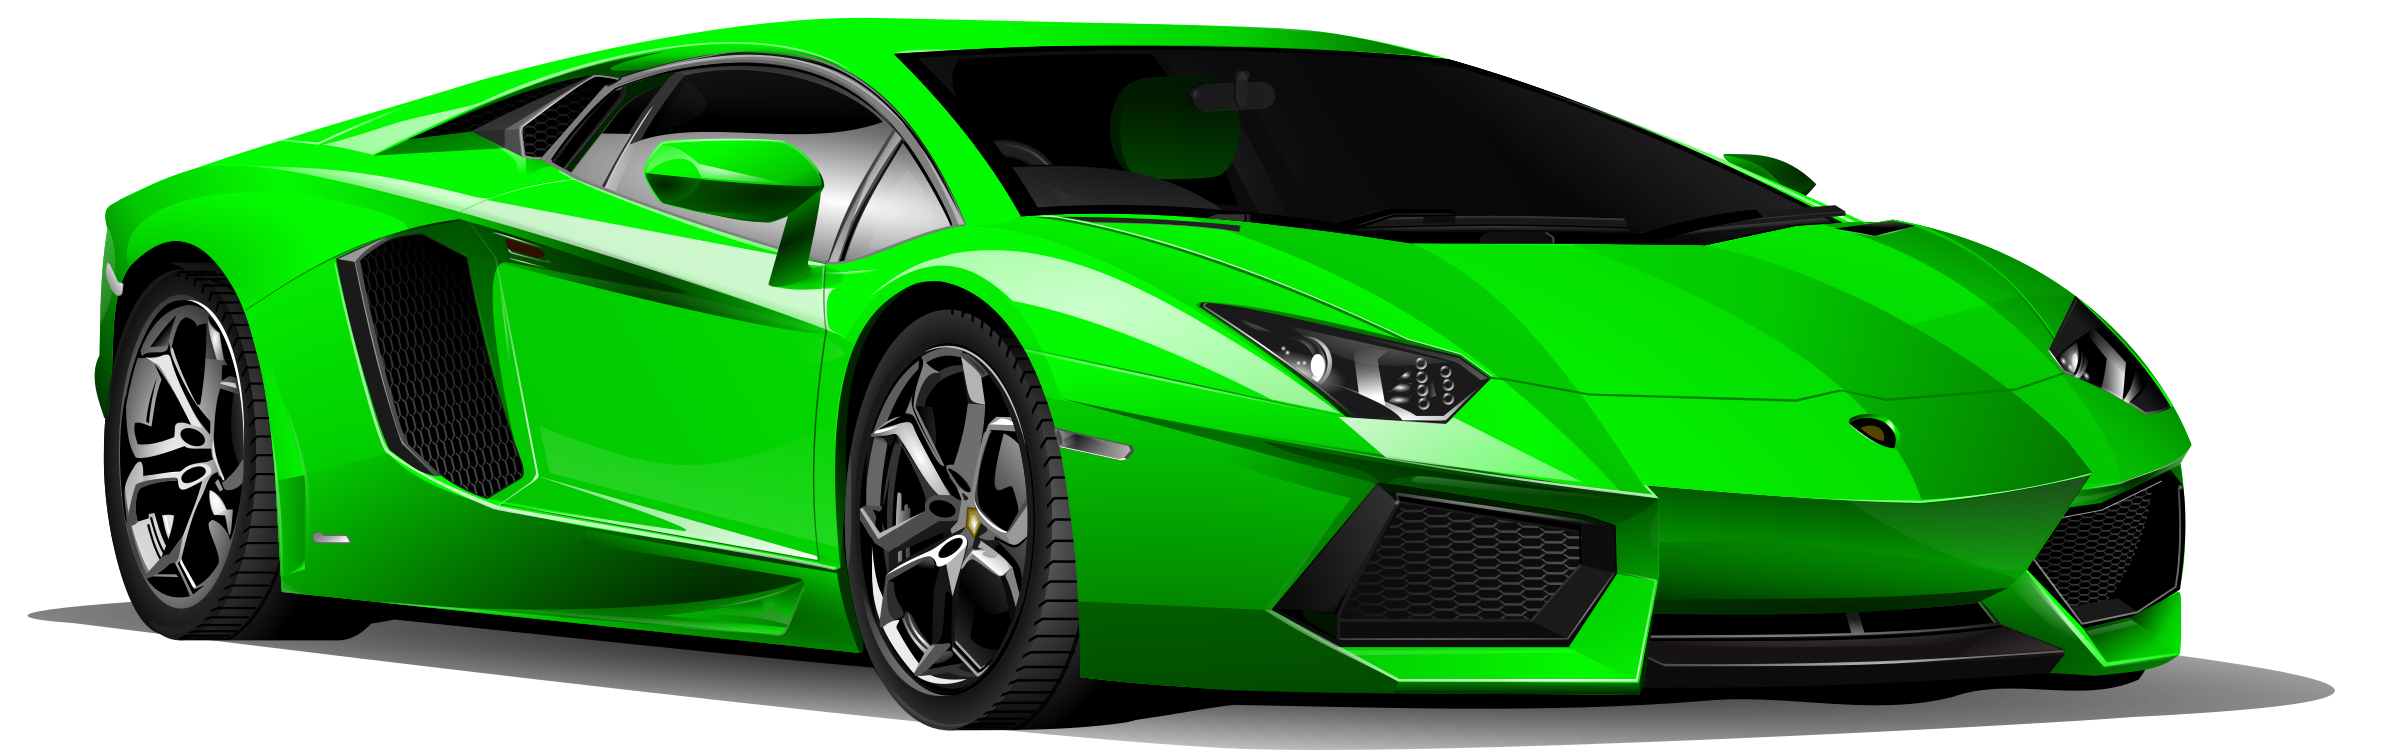 Clipart cars green.  collection of car